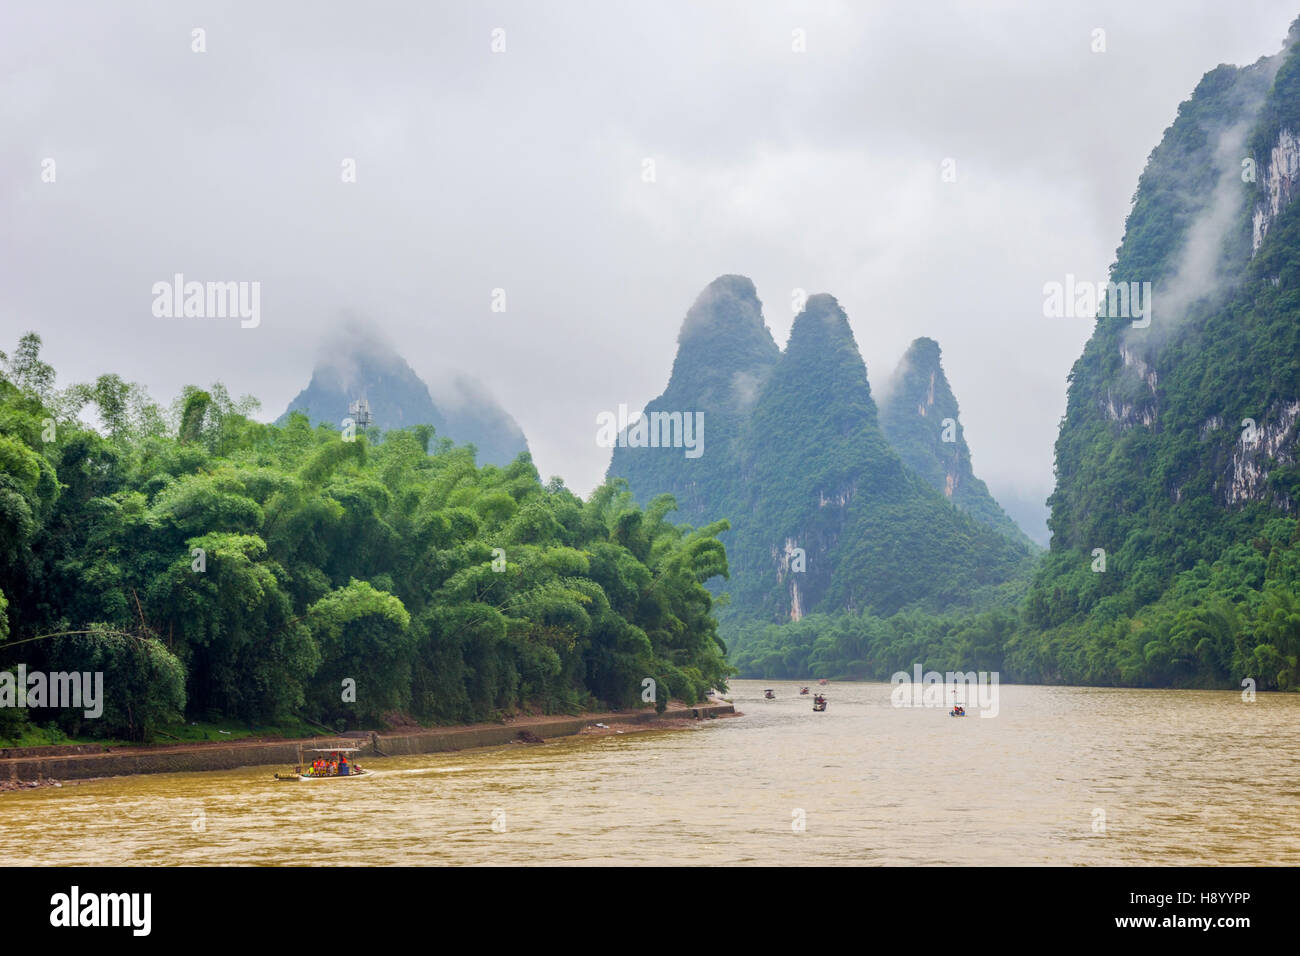 Li river with misty clouds and fog surrounded by famous karst mountains, Guangxi Zhuang, China Stock Photo